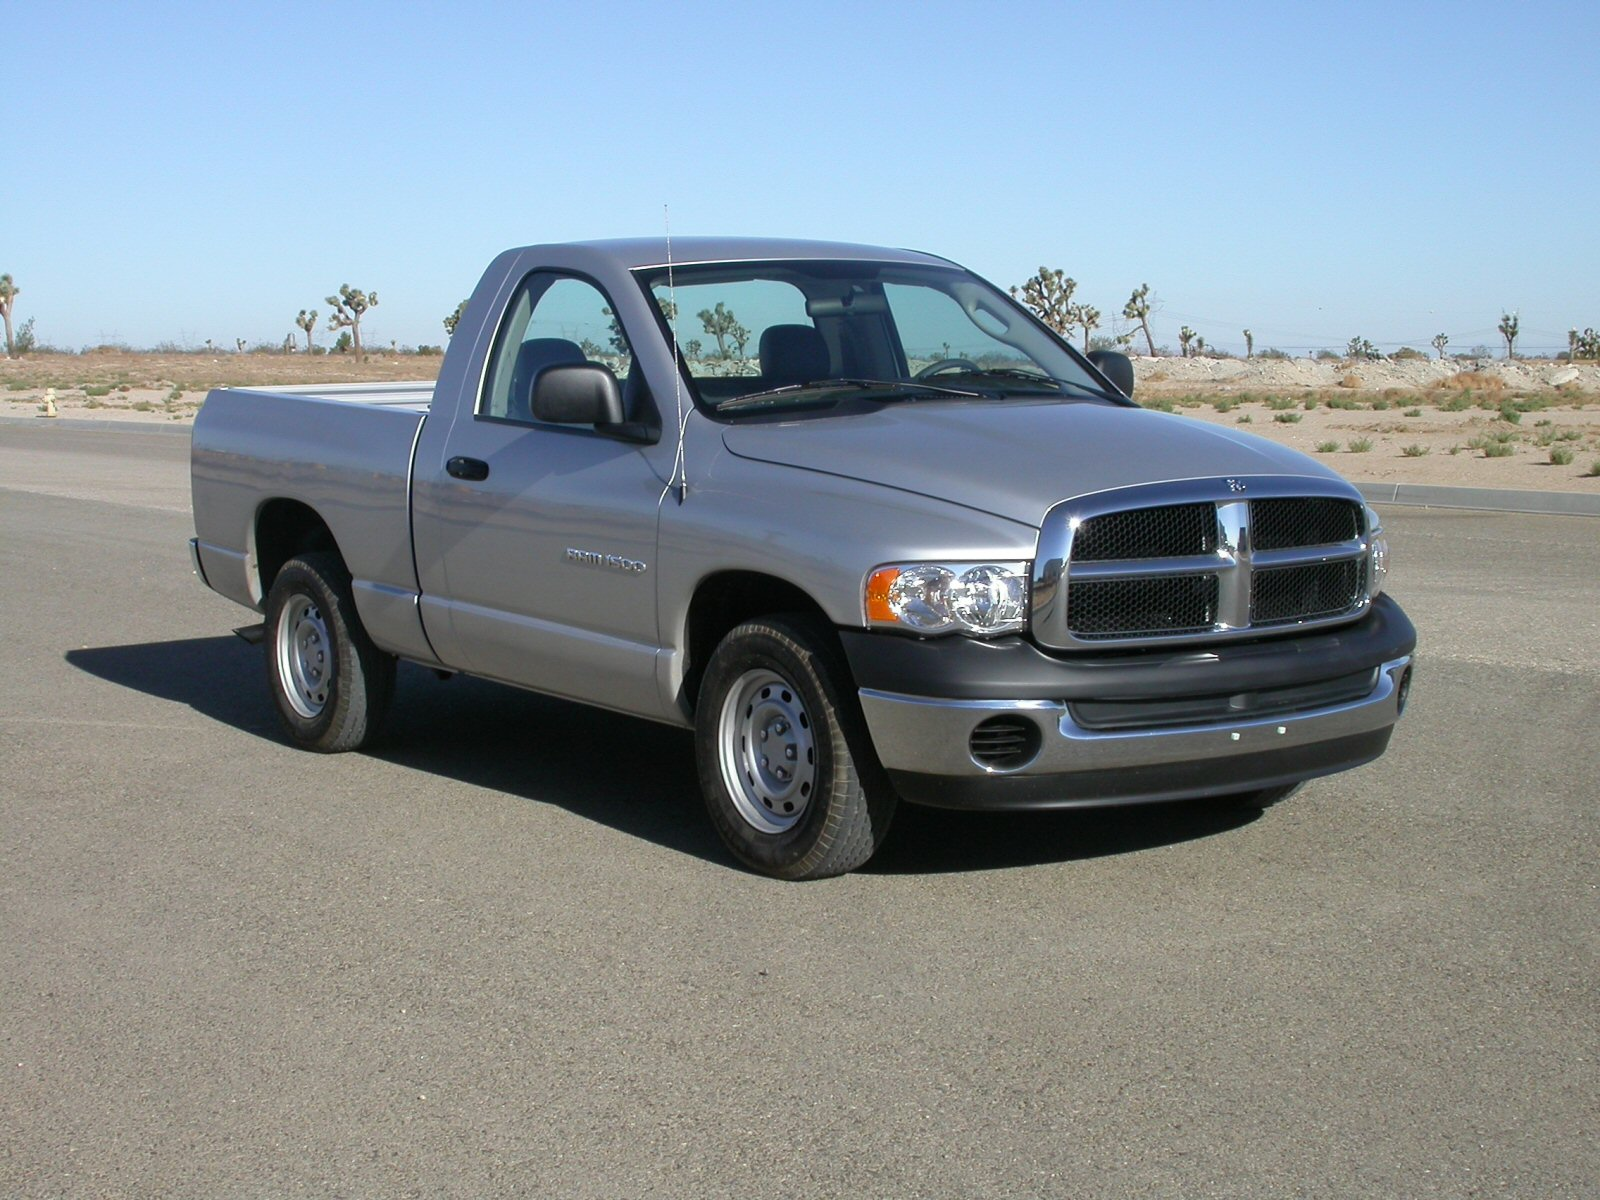 hight resolution of 2005 dodge ram pickup 1500 20 dodge ram pickup 1500 20